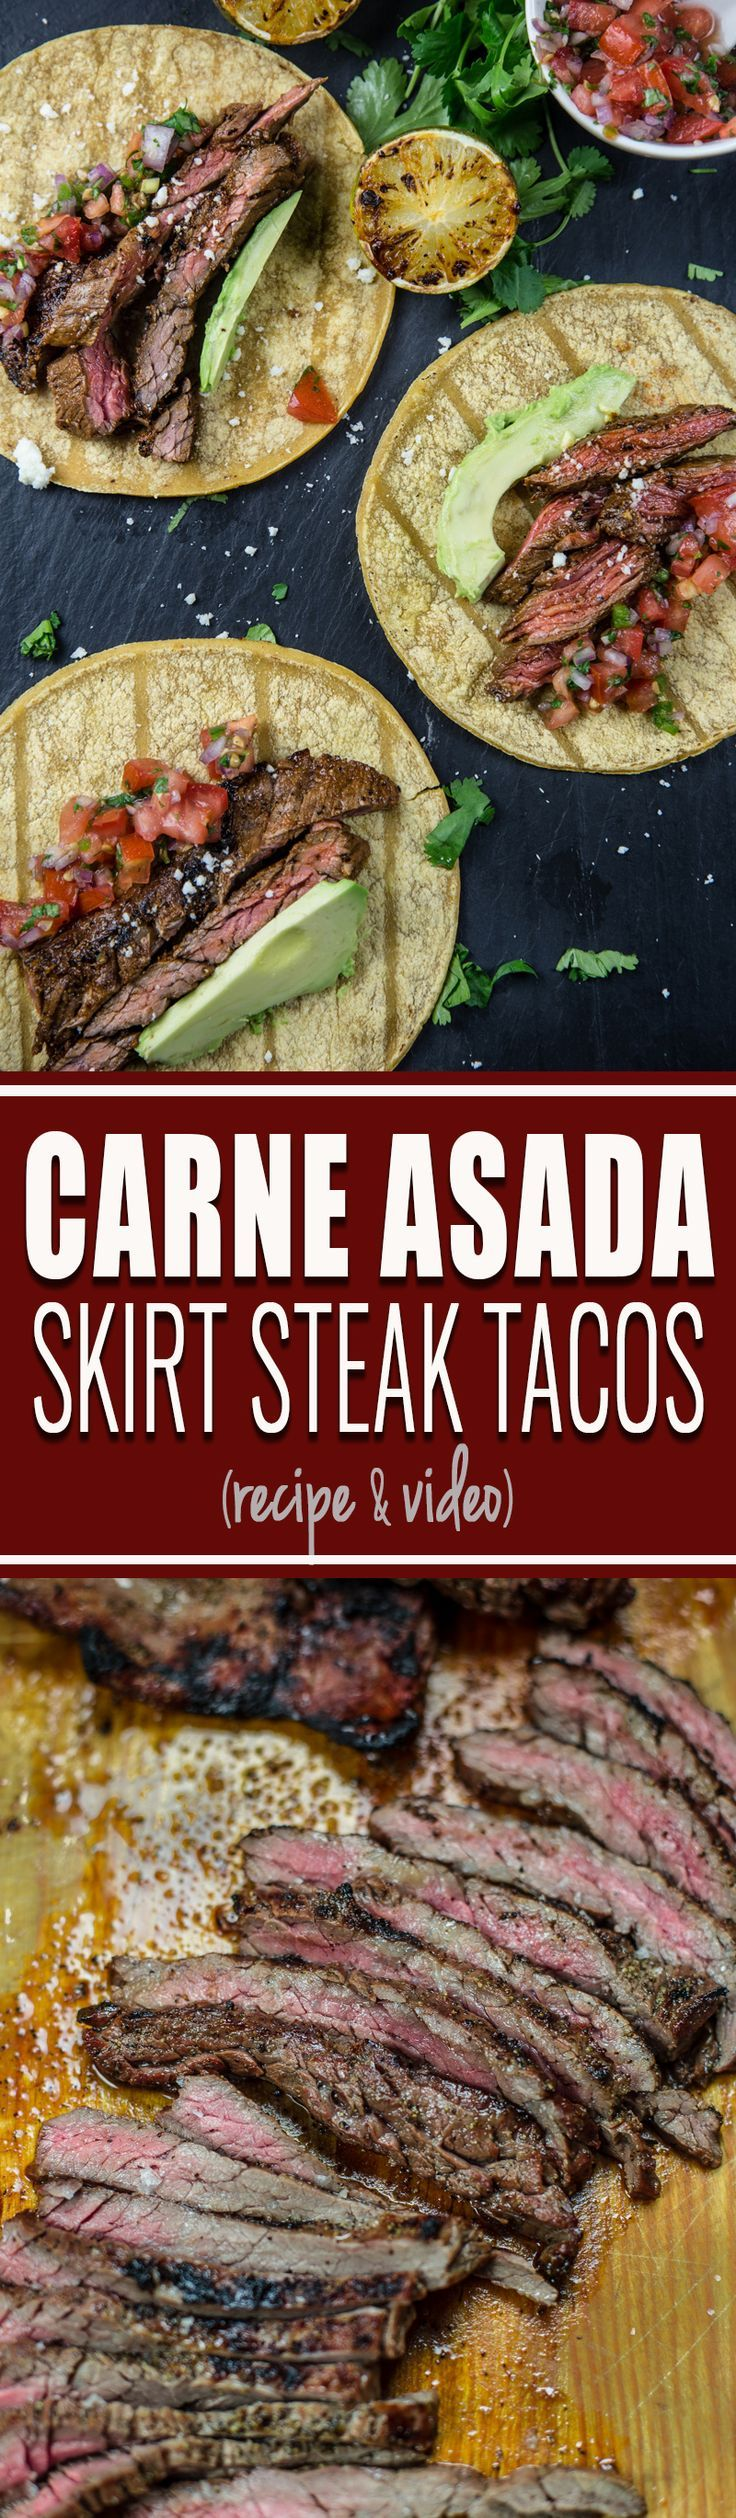 Carne Asada made with marinaded skirt steak, then grilled hot and fast and sliced thin for the ultimate Taco Night meal.